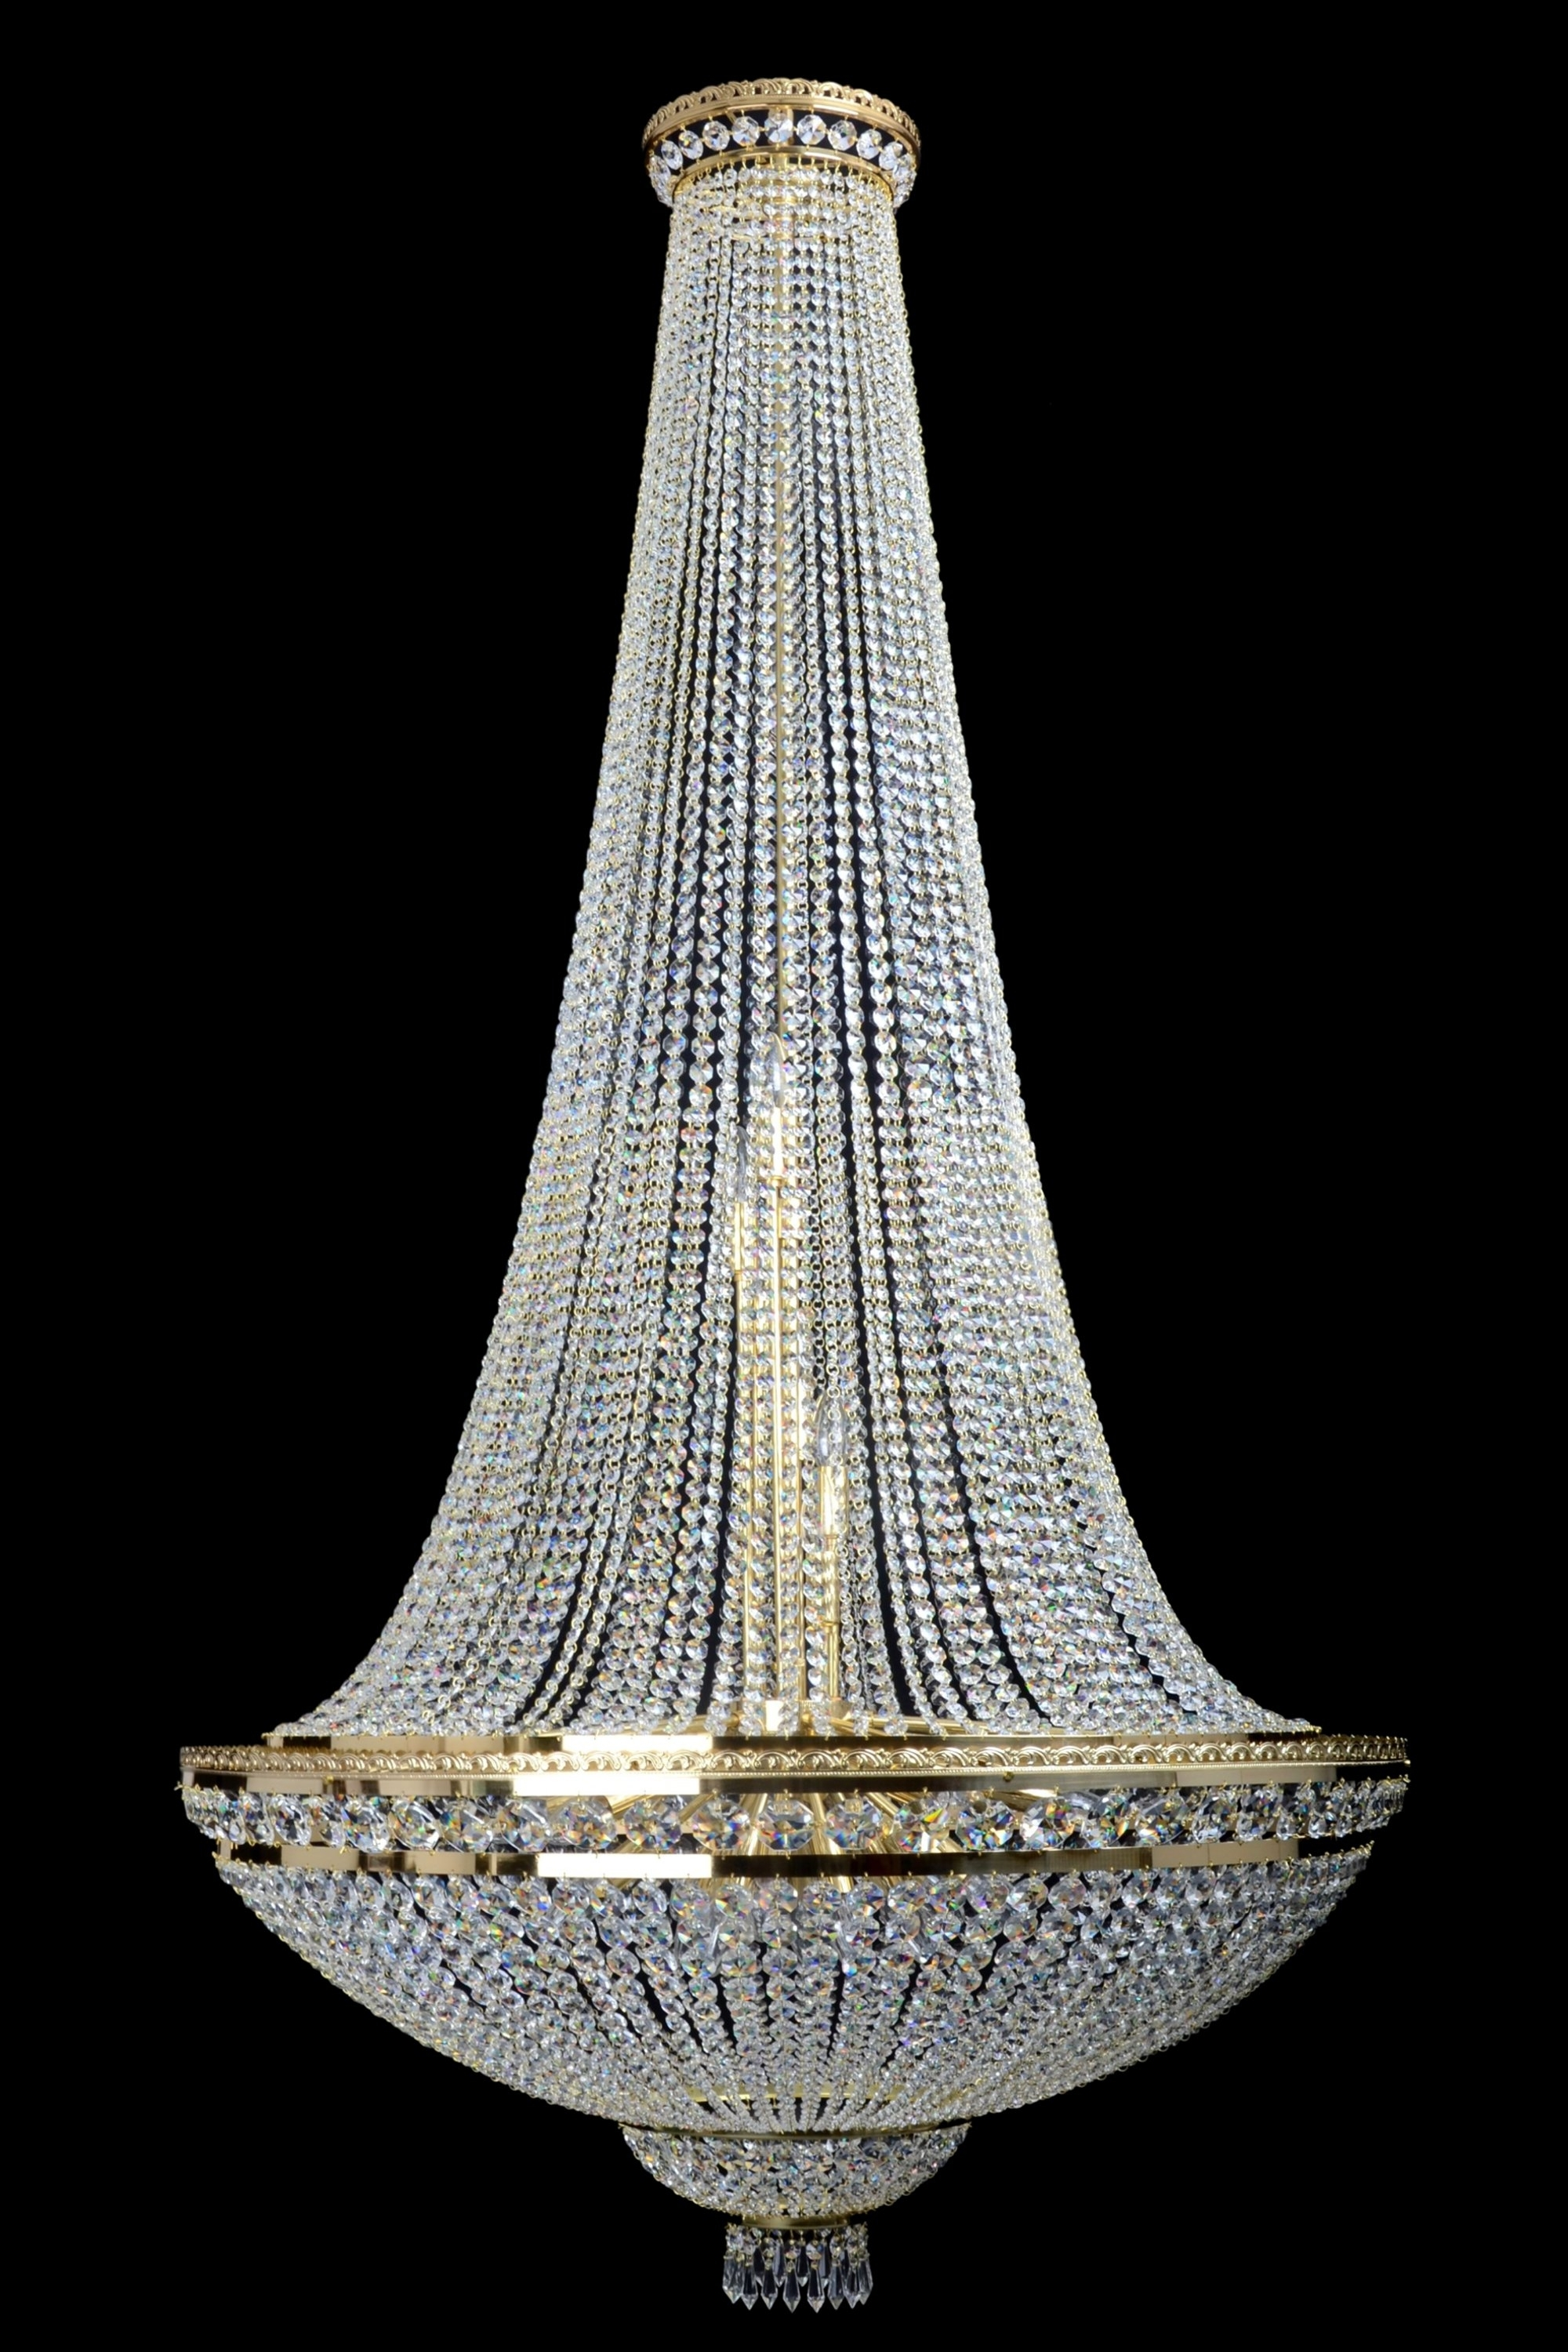 Traditional Crystal Chandeliers Intended For Most Recently Released Ccb7150 21 Basket Style Empire Chandelier – The Crystal Chandelier (View 15 of 20)